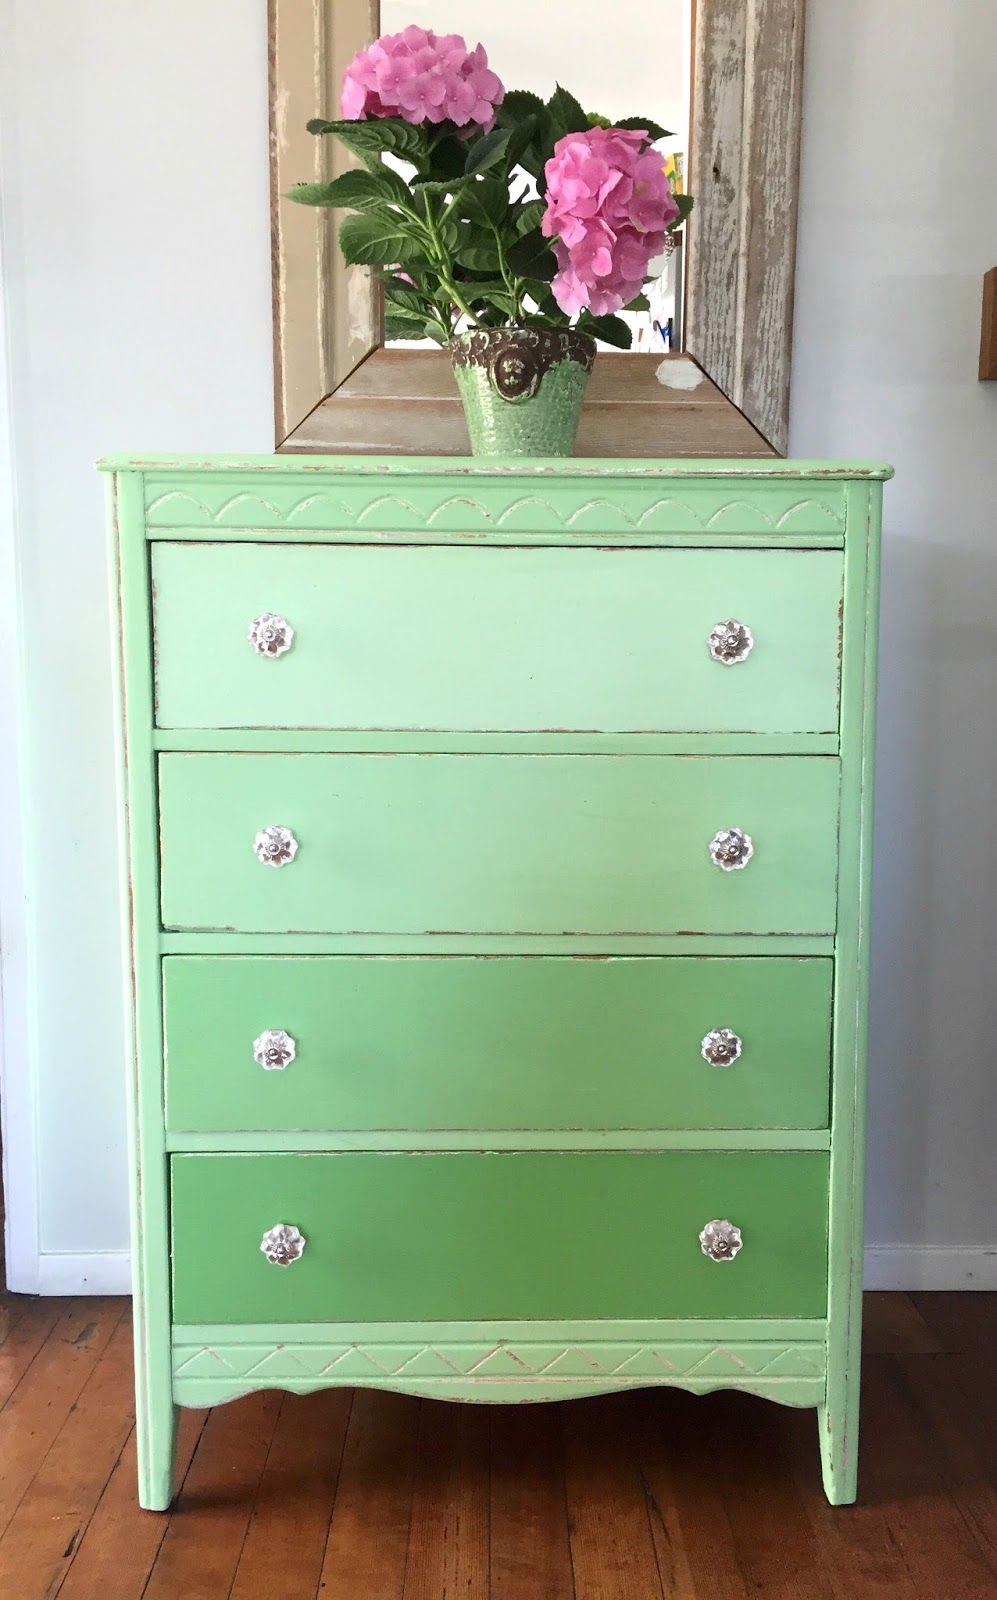 D S Cottage And Design How To Paint A Green Ombre Dresser